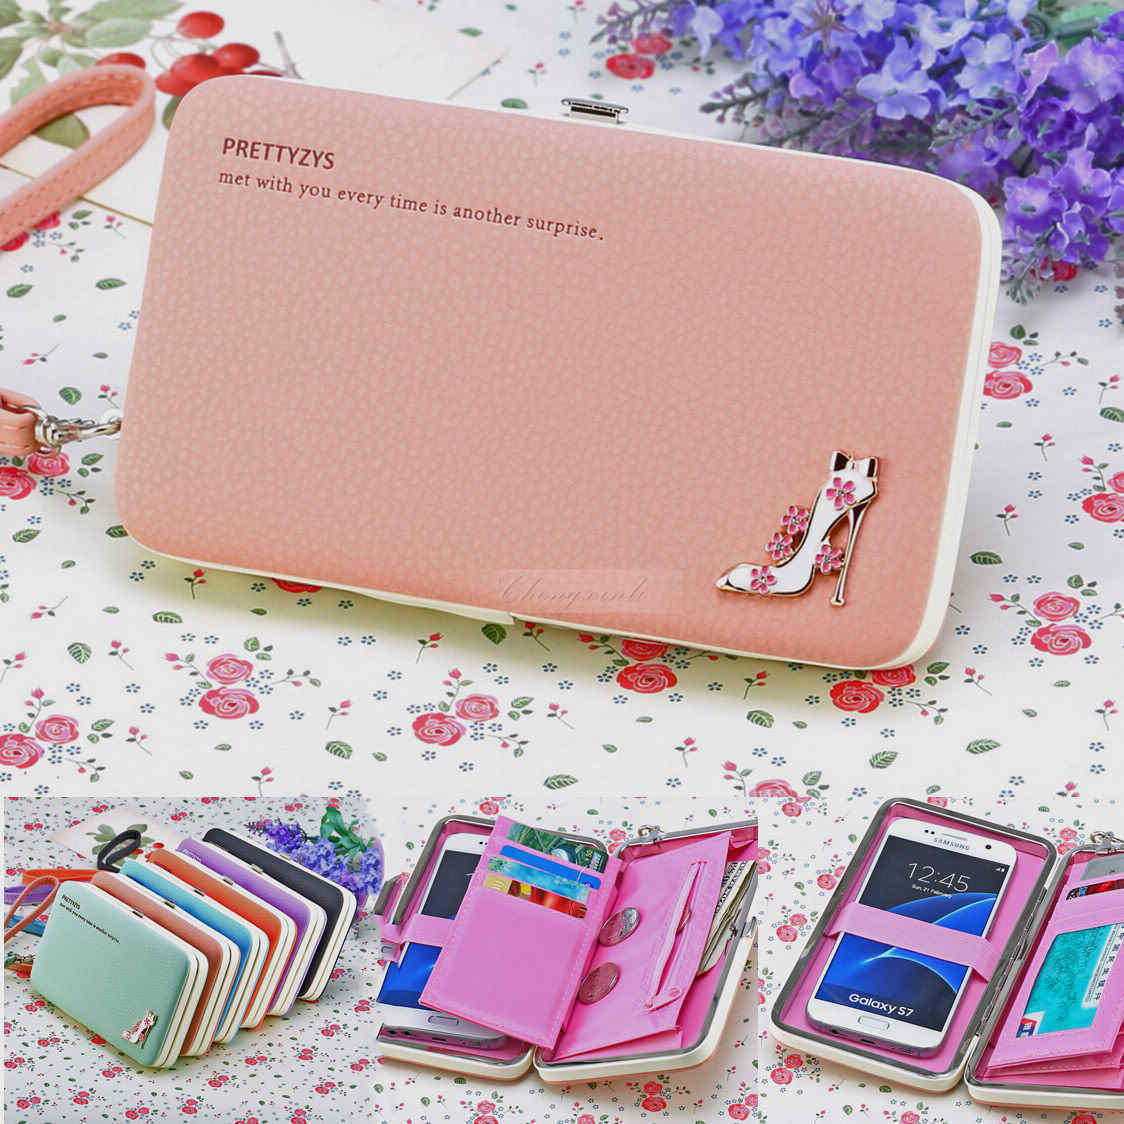 Retro Candy Handbag Purse Clutch Wallet Case Cover Bag For Samsung and iphone 7 7Plus